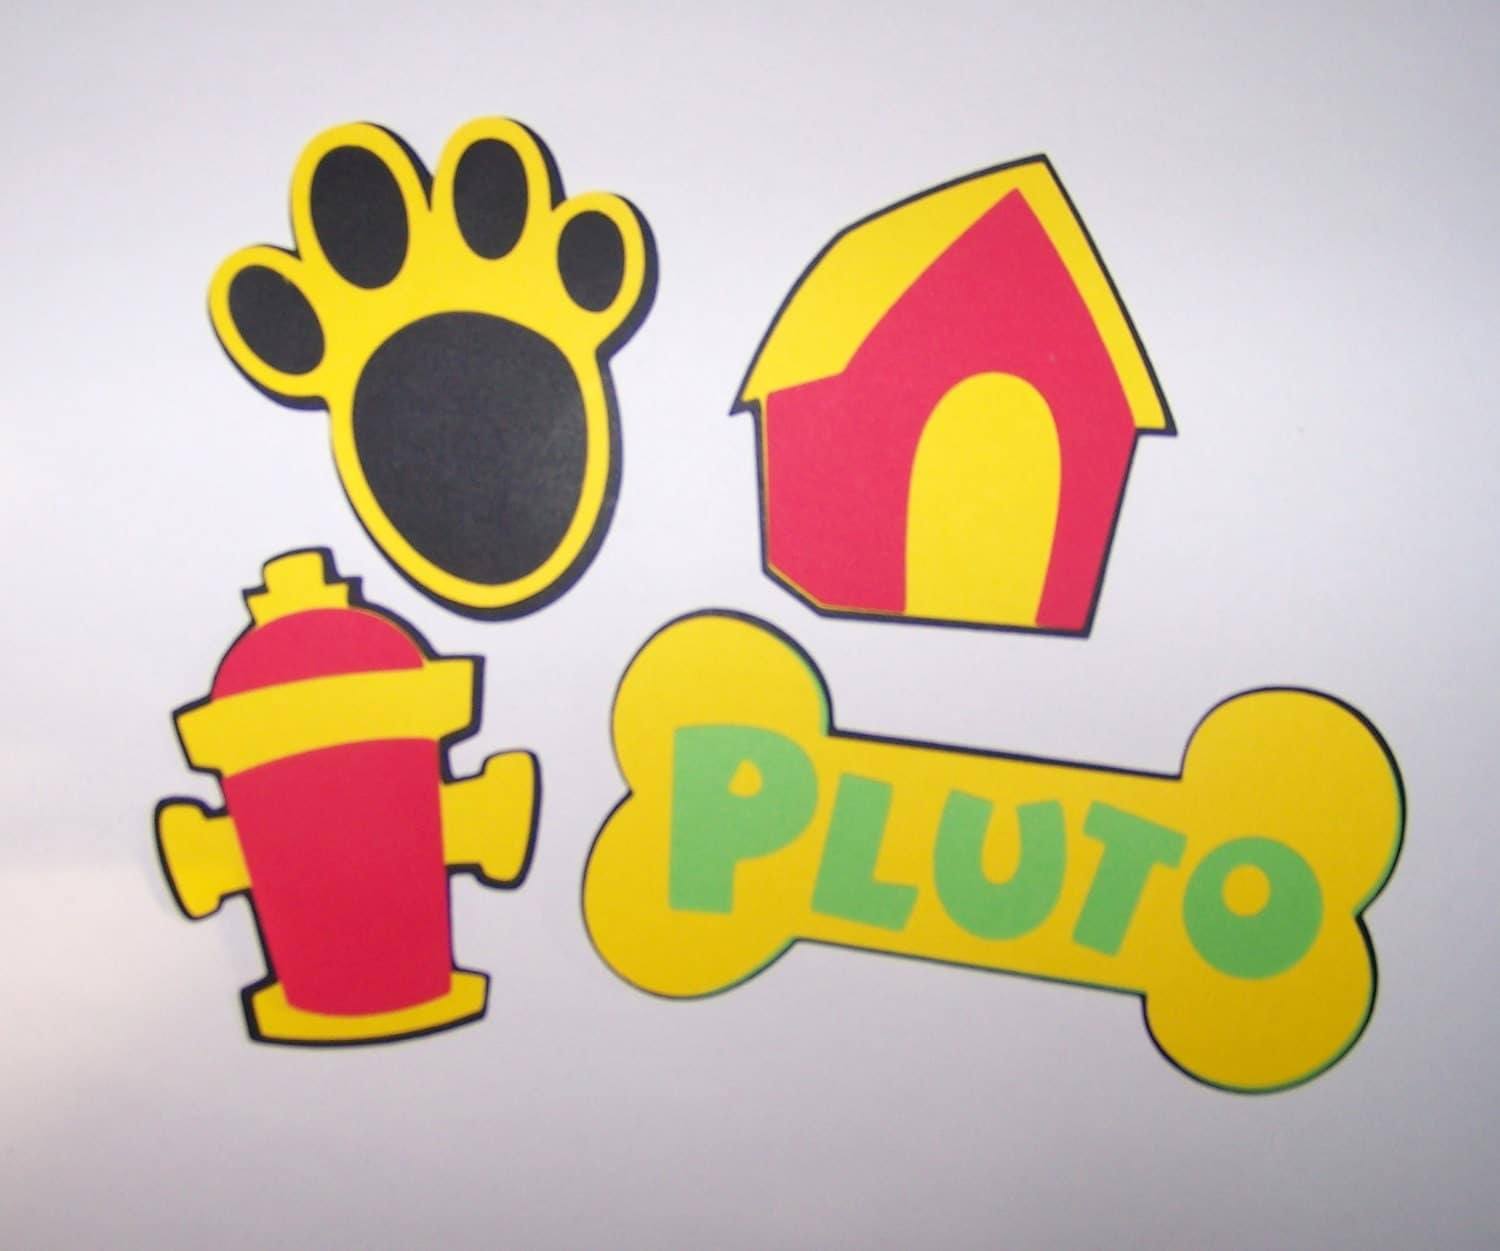 16 Pluto Die Cut Shapes 3 Inches From Snidesignsnsupplies